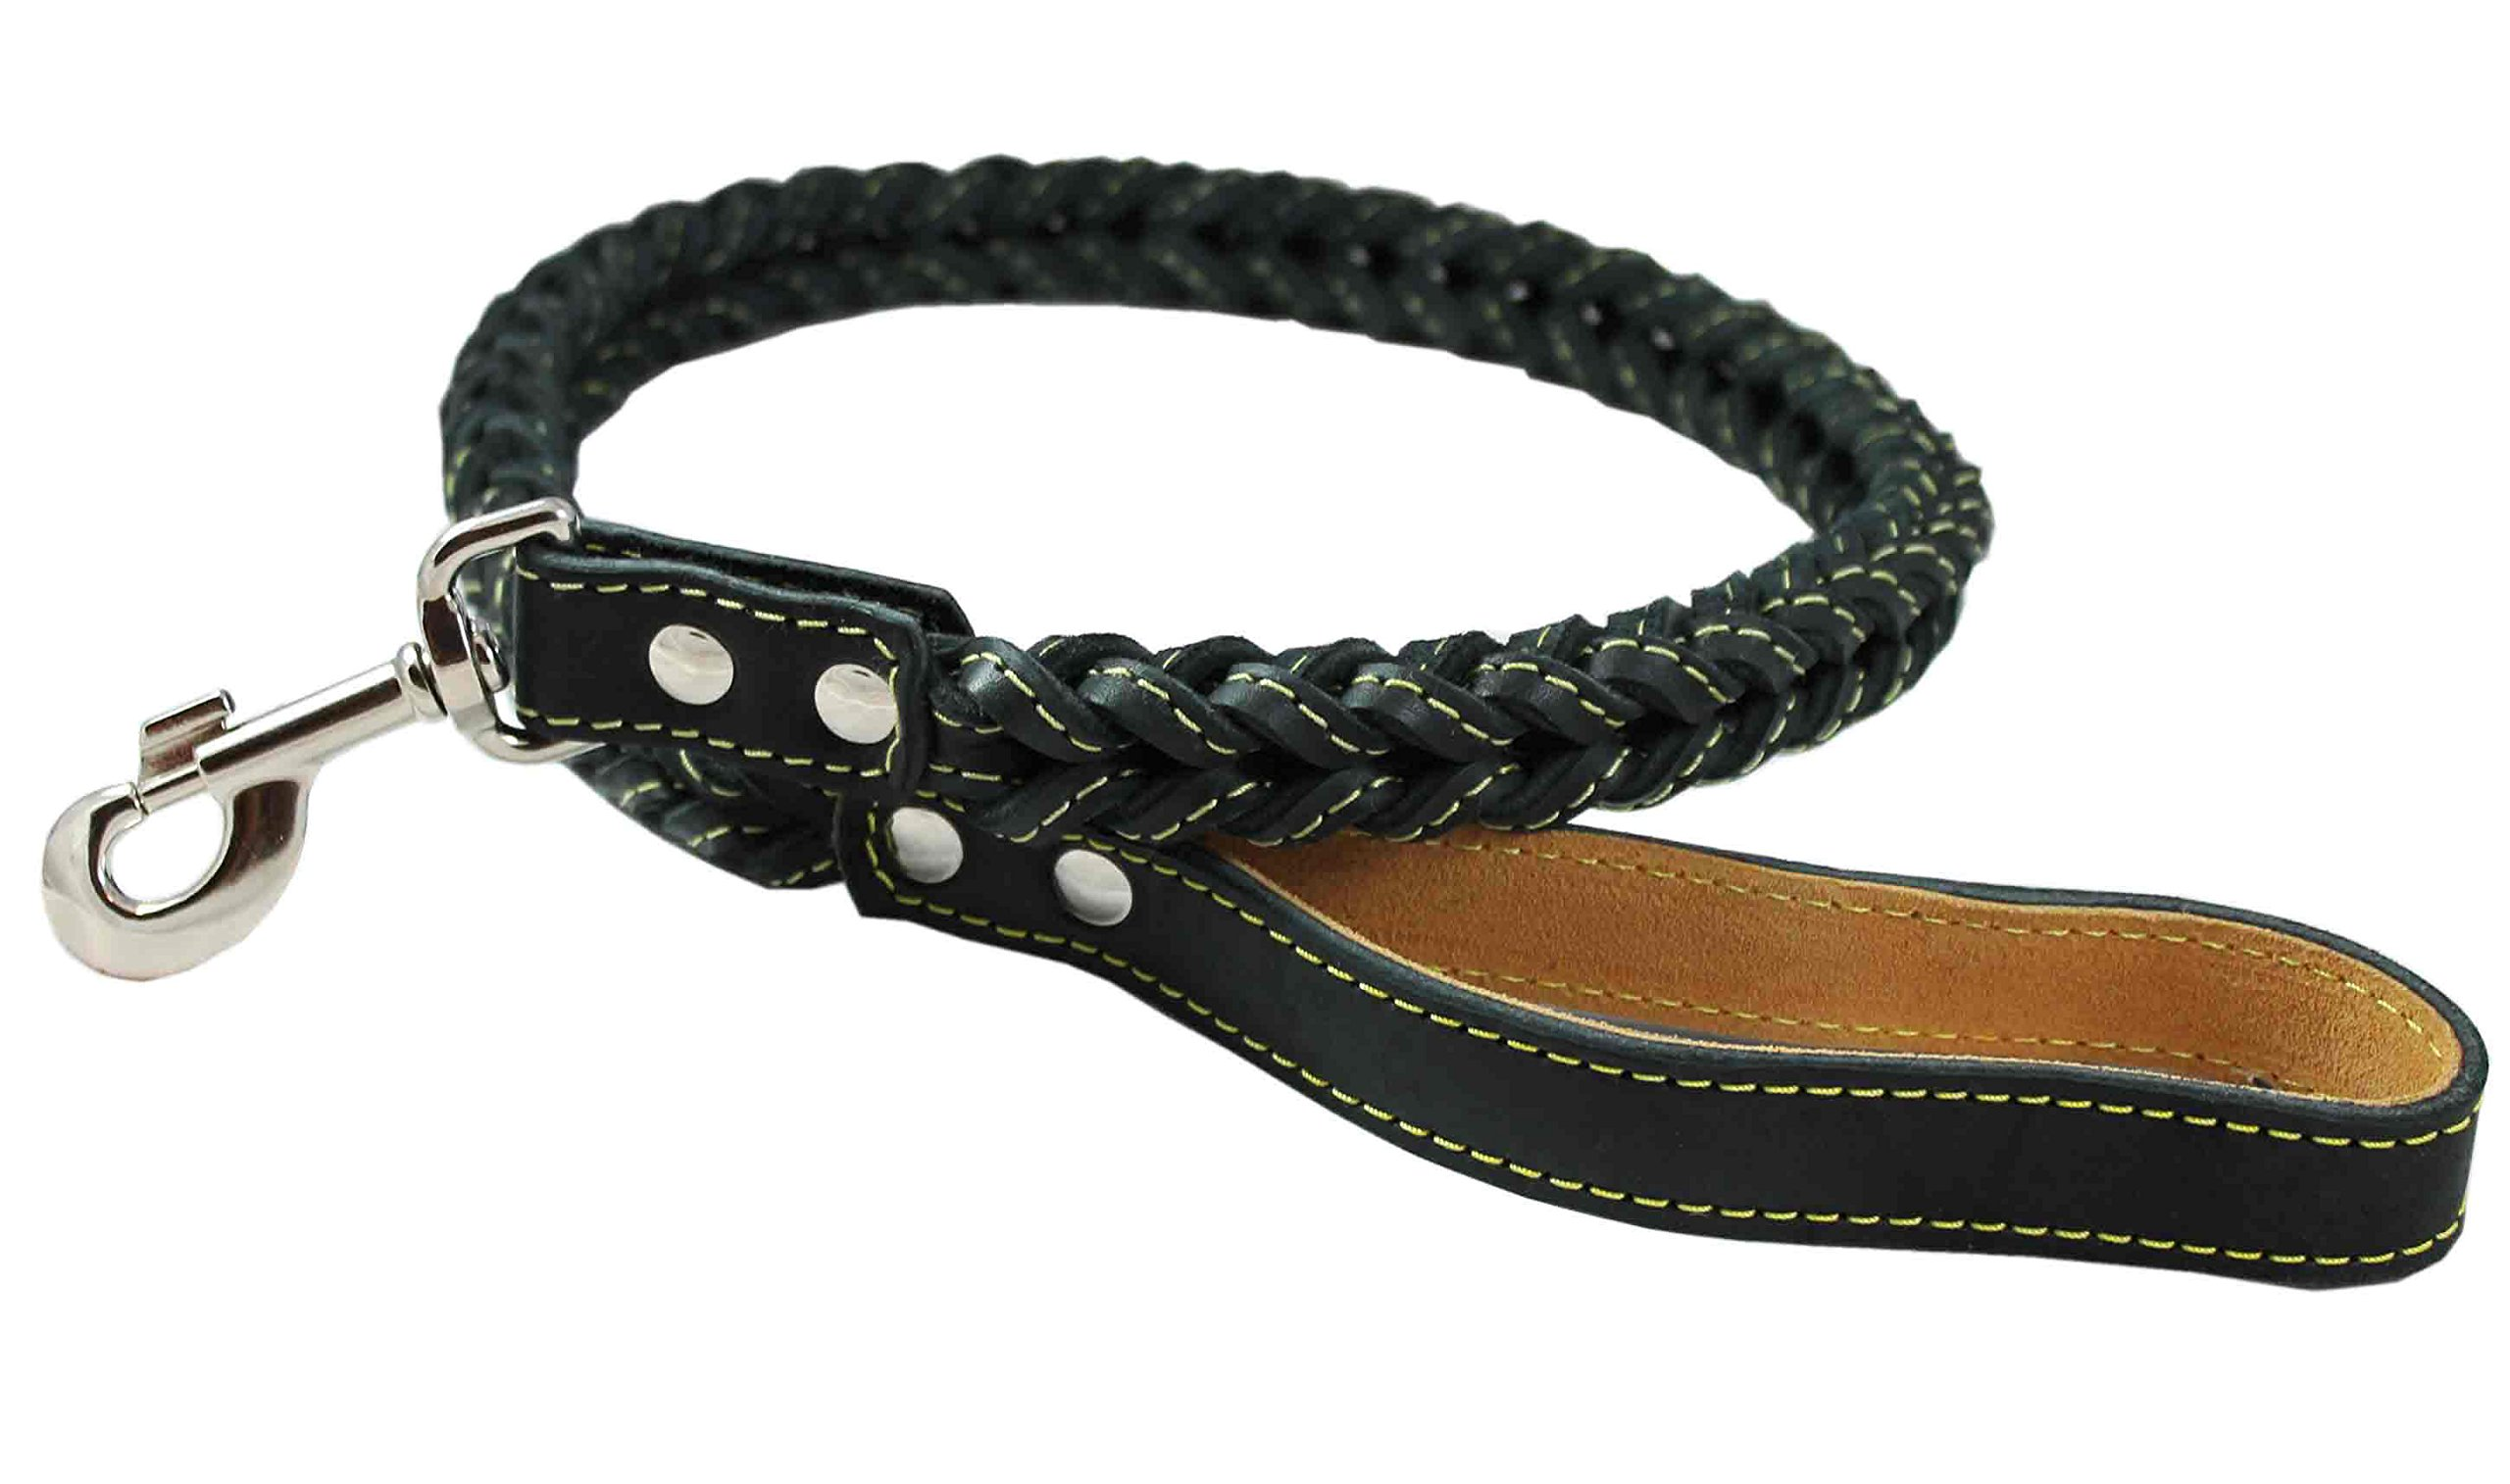 4-thong Square Fully Braided Genuine Leather Dog Leash, 3.5 ft Length 1'' Wide Black Large to X-Large by Dogs My Love (Image #1)